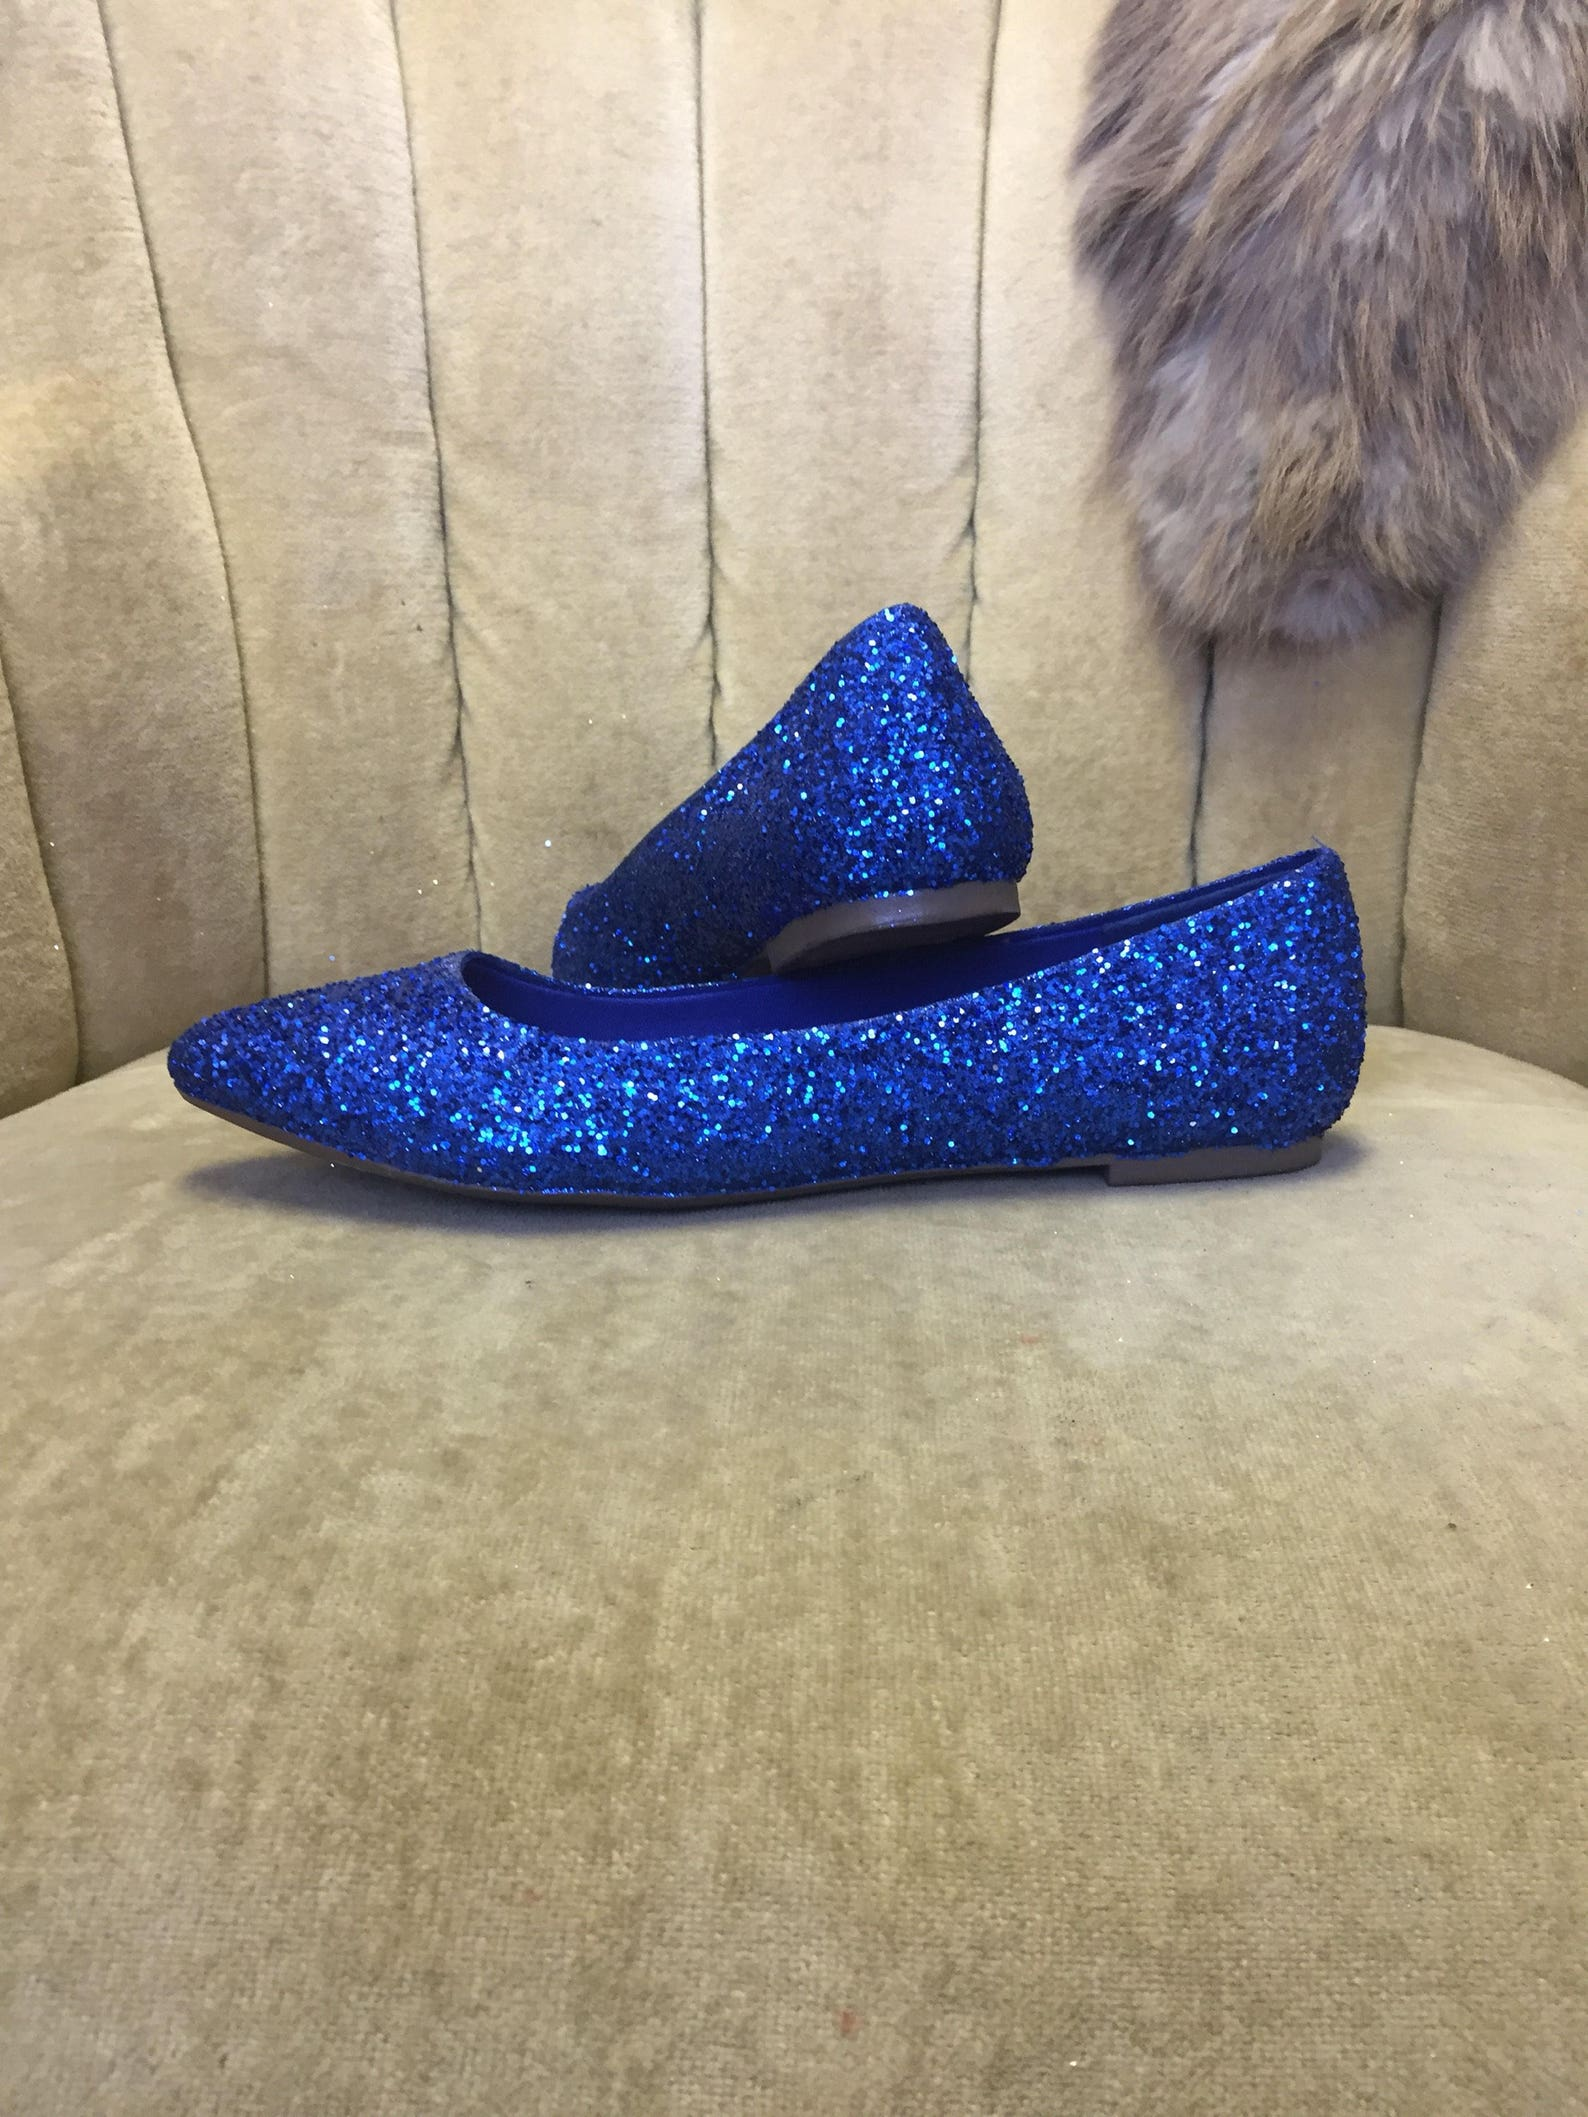 women's custom made to order blue glitter ballet flats. pointed toe ballet flats. glitter flats. slip on shoes